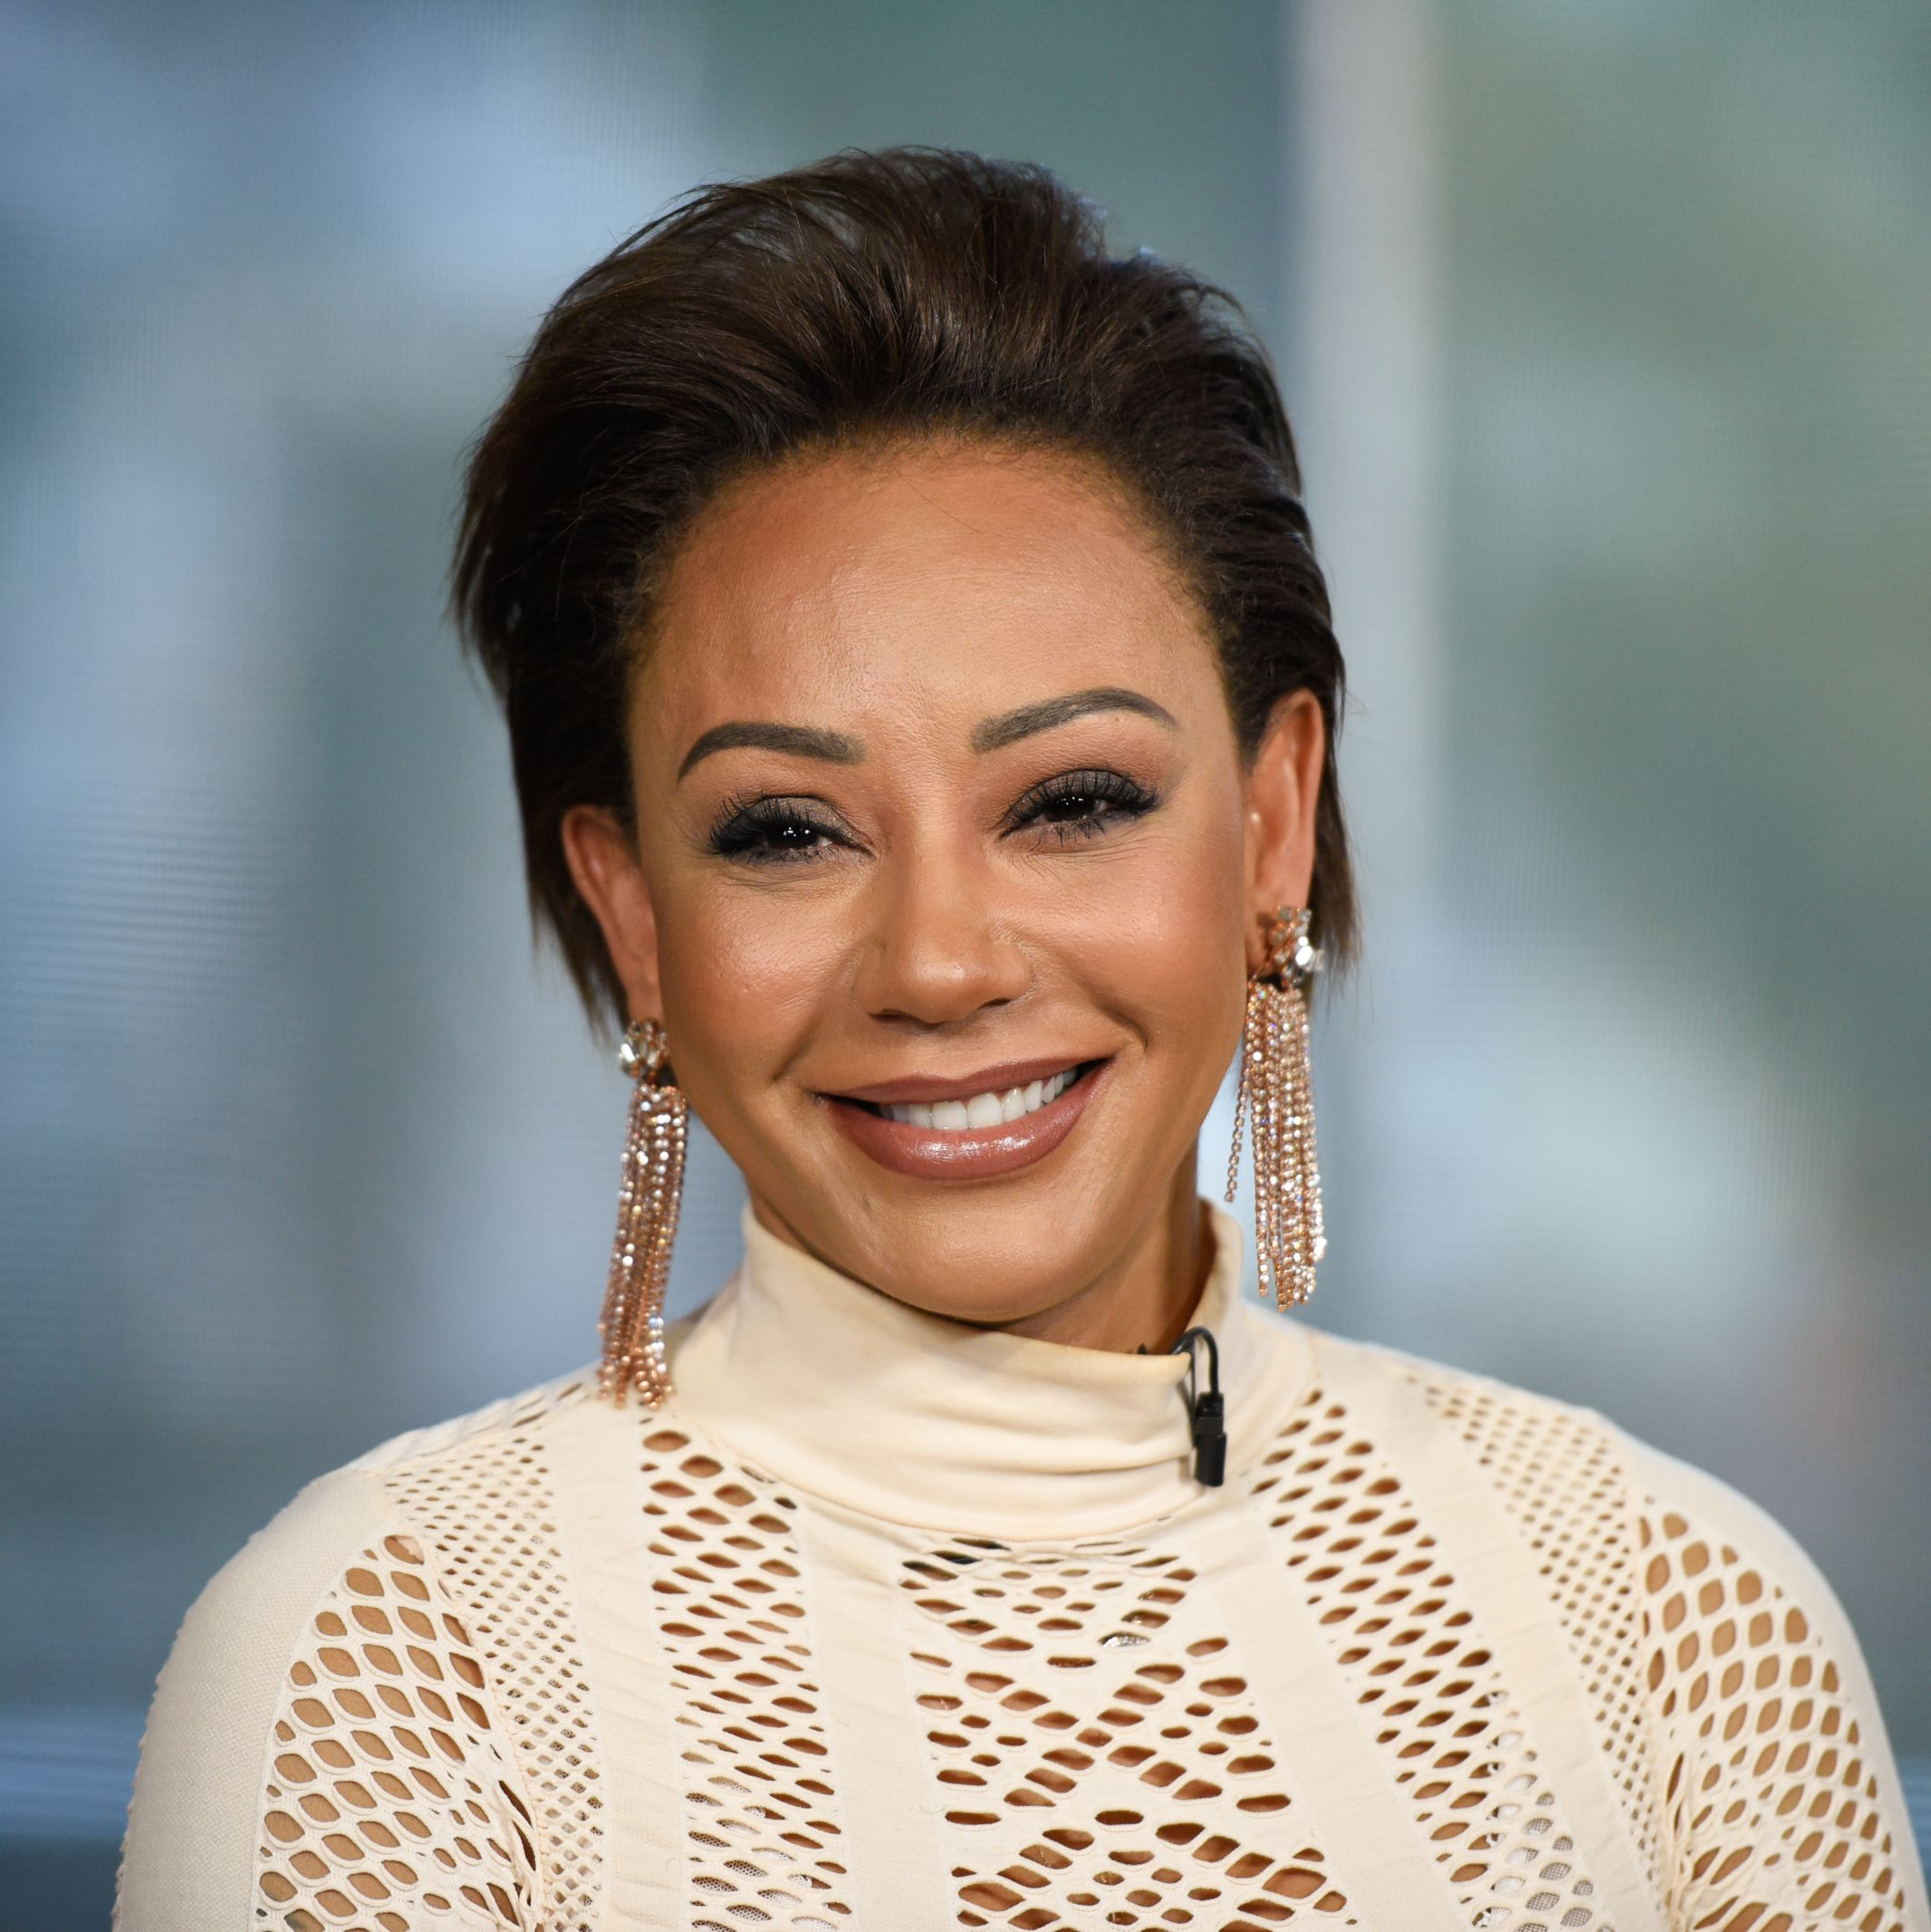 Mel B Is In The Hospital After Breaking Two Ribs And 'Severing' Her Hand